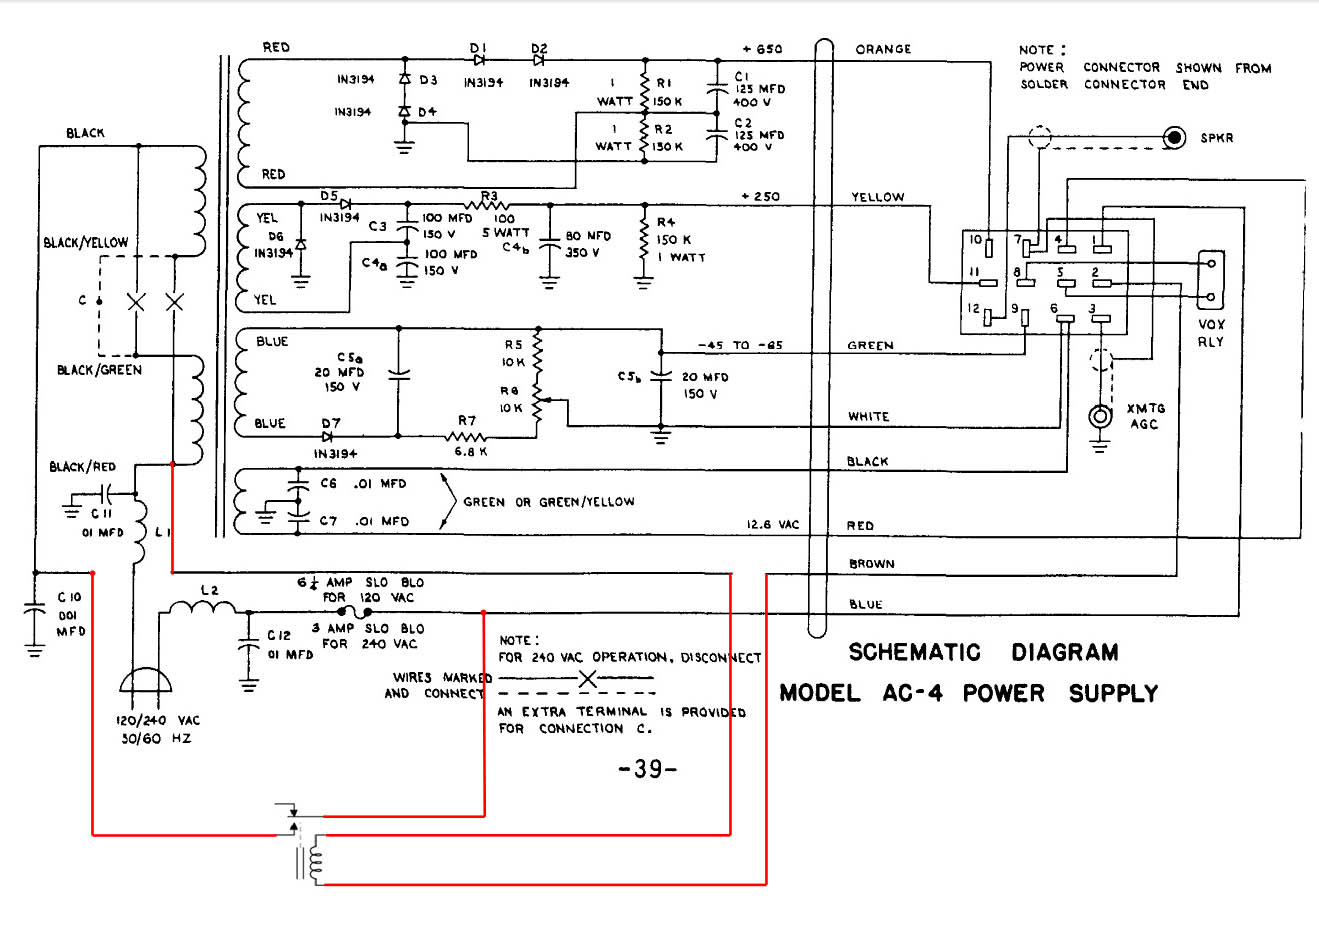 wiring multiple schematics together wiring 4 schematics drake ac-4 power supply rebuild